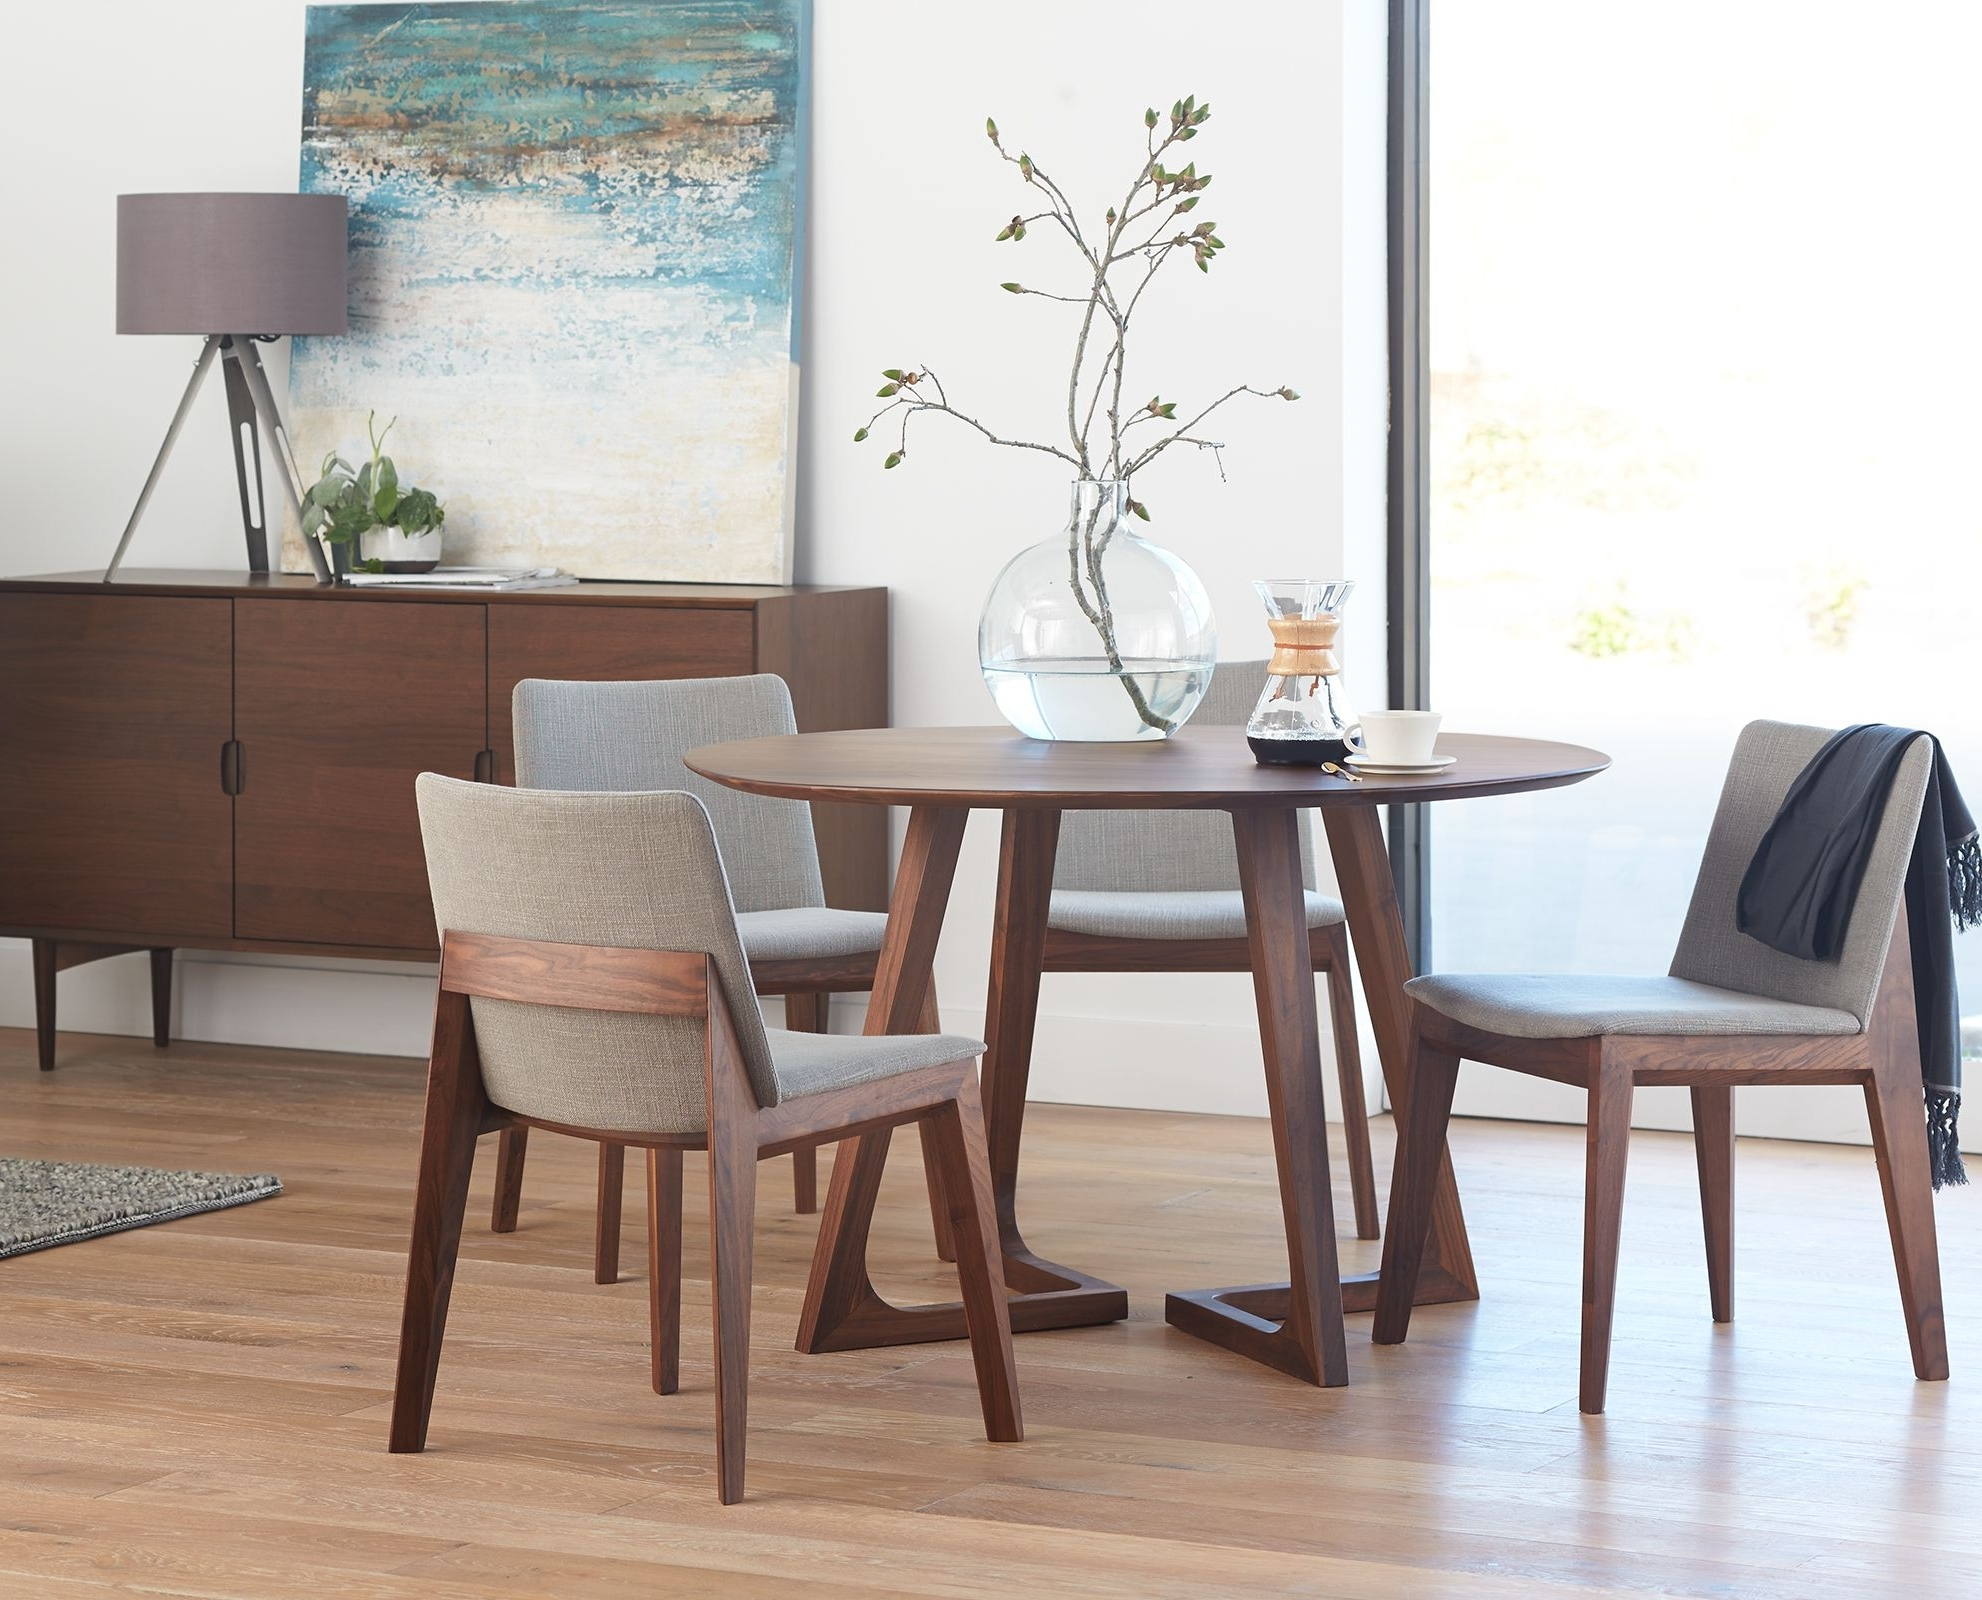 Scandinavian Dining Tables And Chairs Inside Preferred Round Table And Chairs From Dania (View 16 of 25)